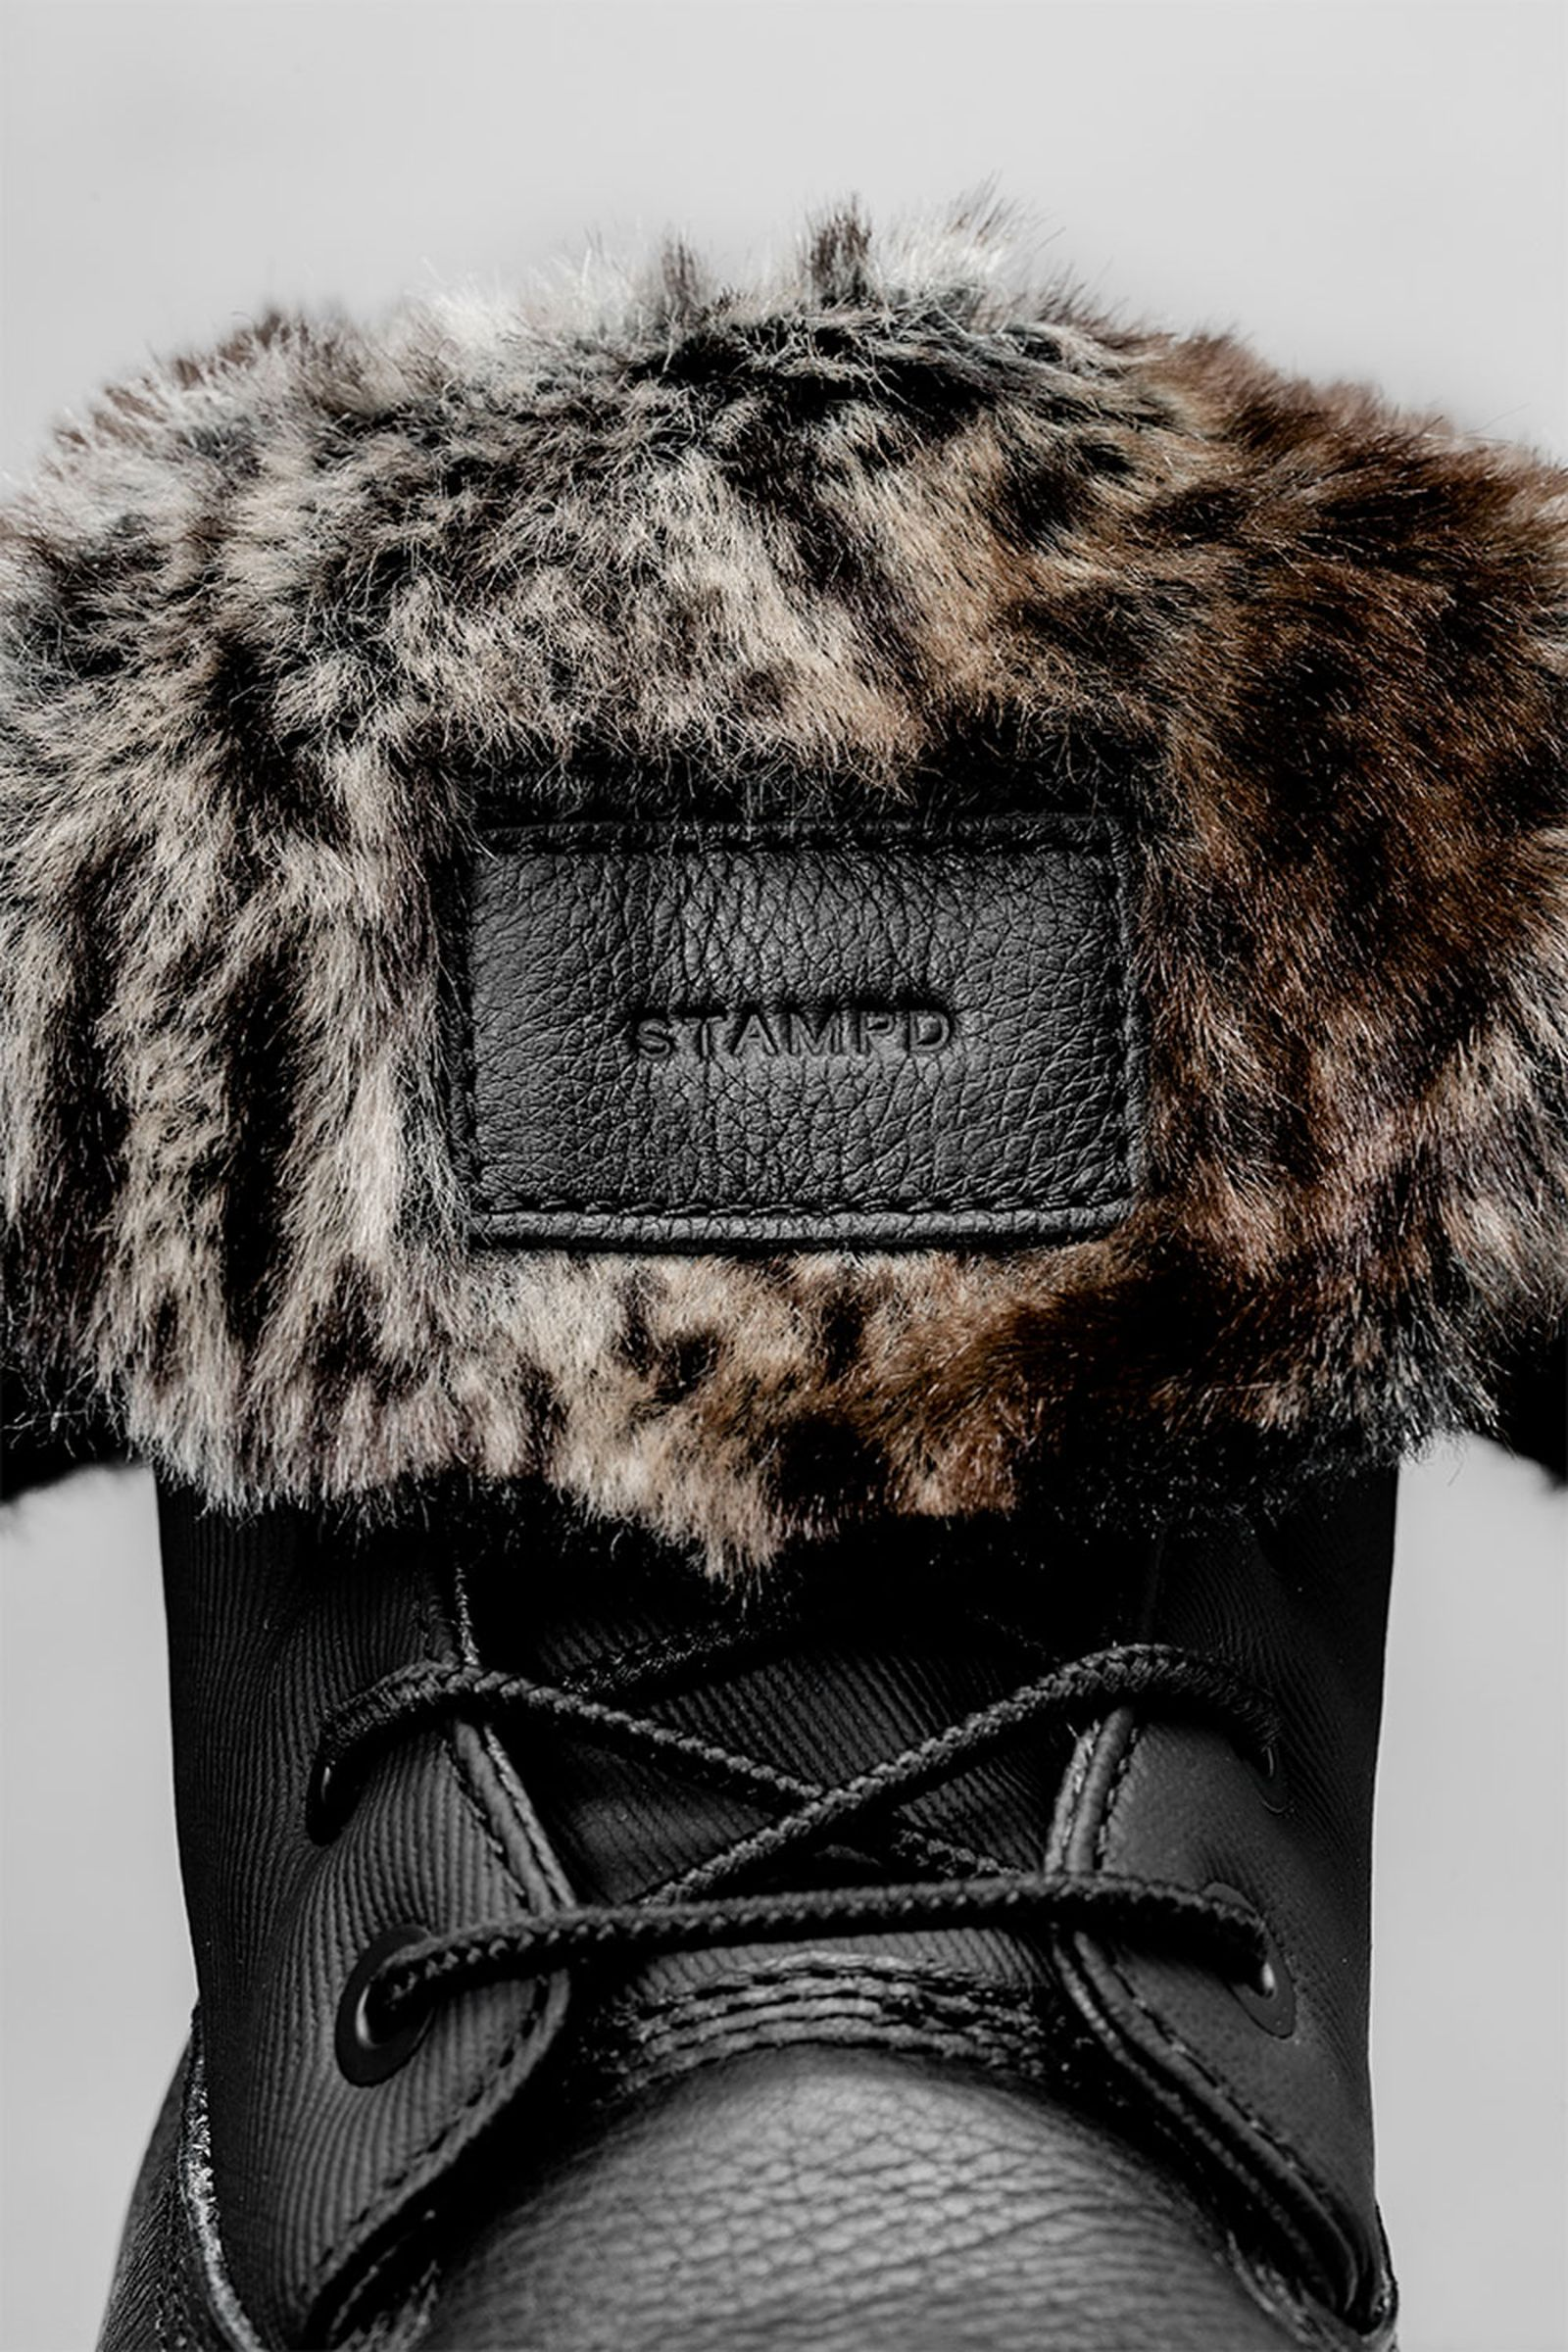 STAMPD Timberland gaiter boot release date price